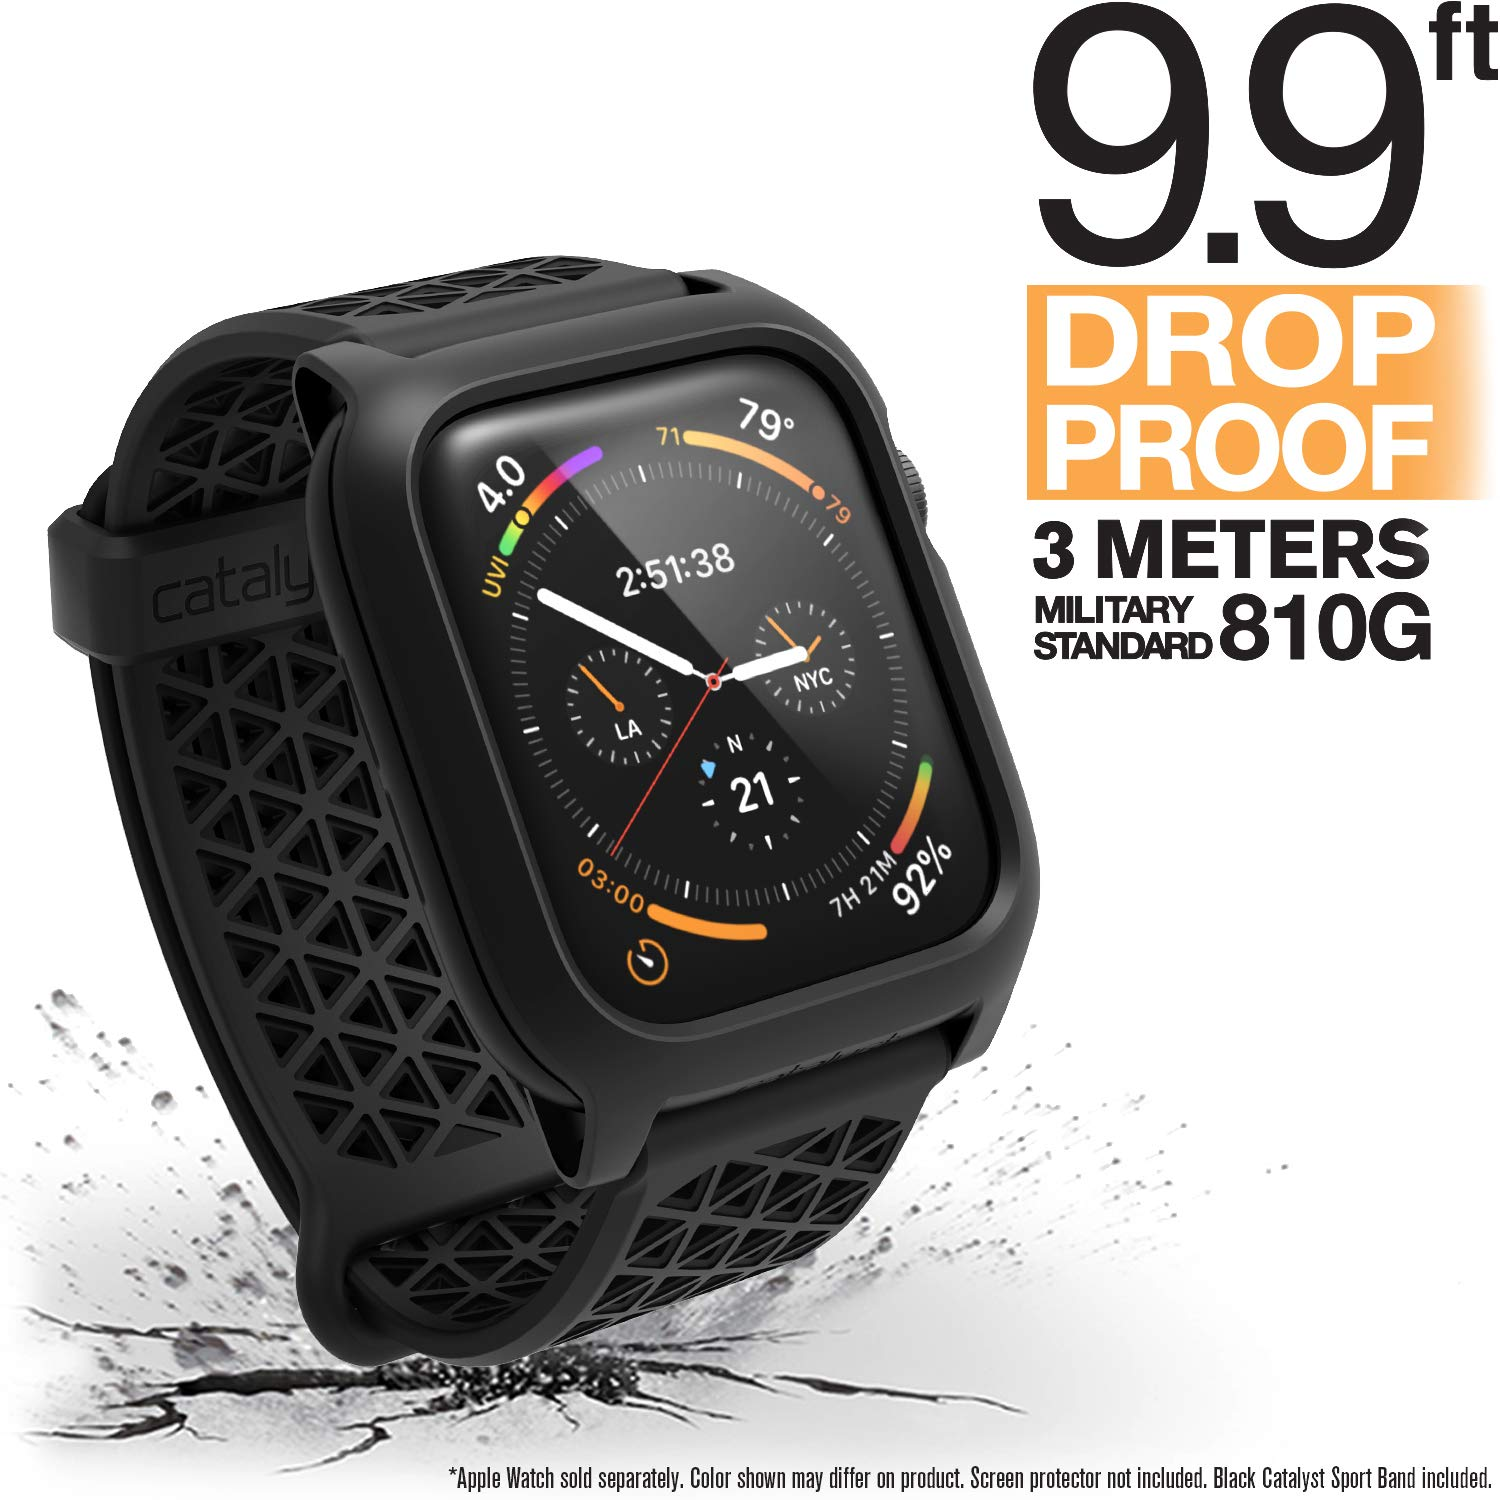 Catalyst Apple Watch Series 4 Impact Case 44mm ECG and EKG Compatible Superior Sport Band Rugged iWatch Protective Case, Drop Proof Shock Proof Apple Watch Case, Stealth Black by Catalyst